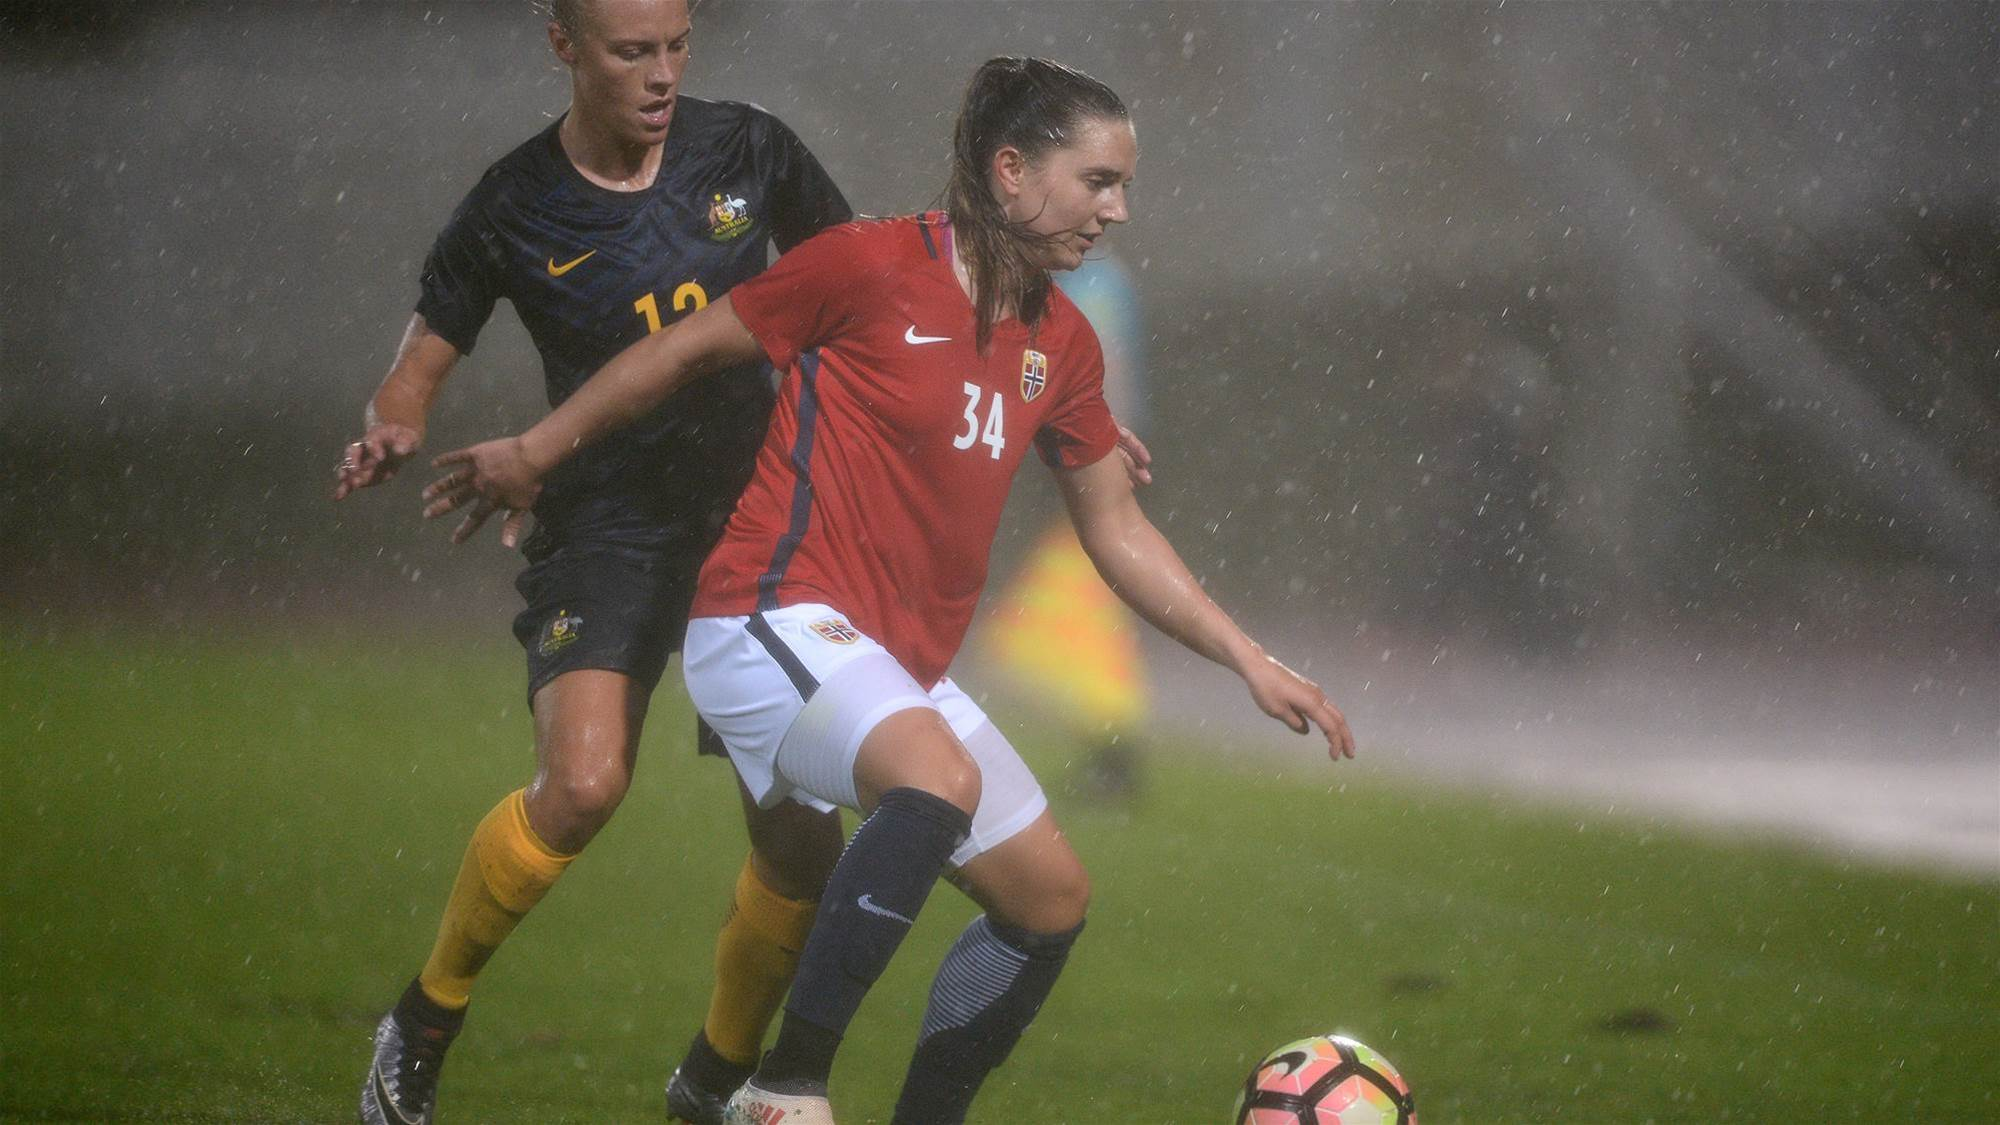 The Matildas take points against Norway